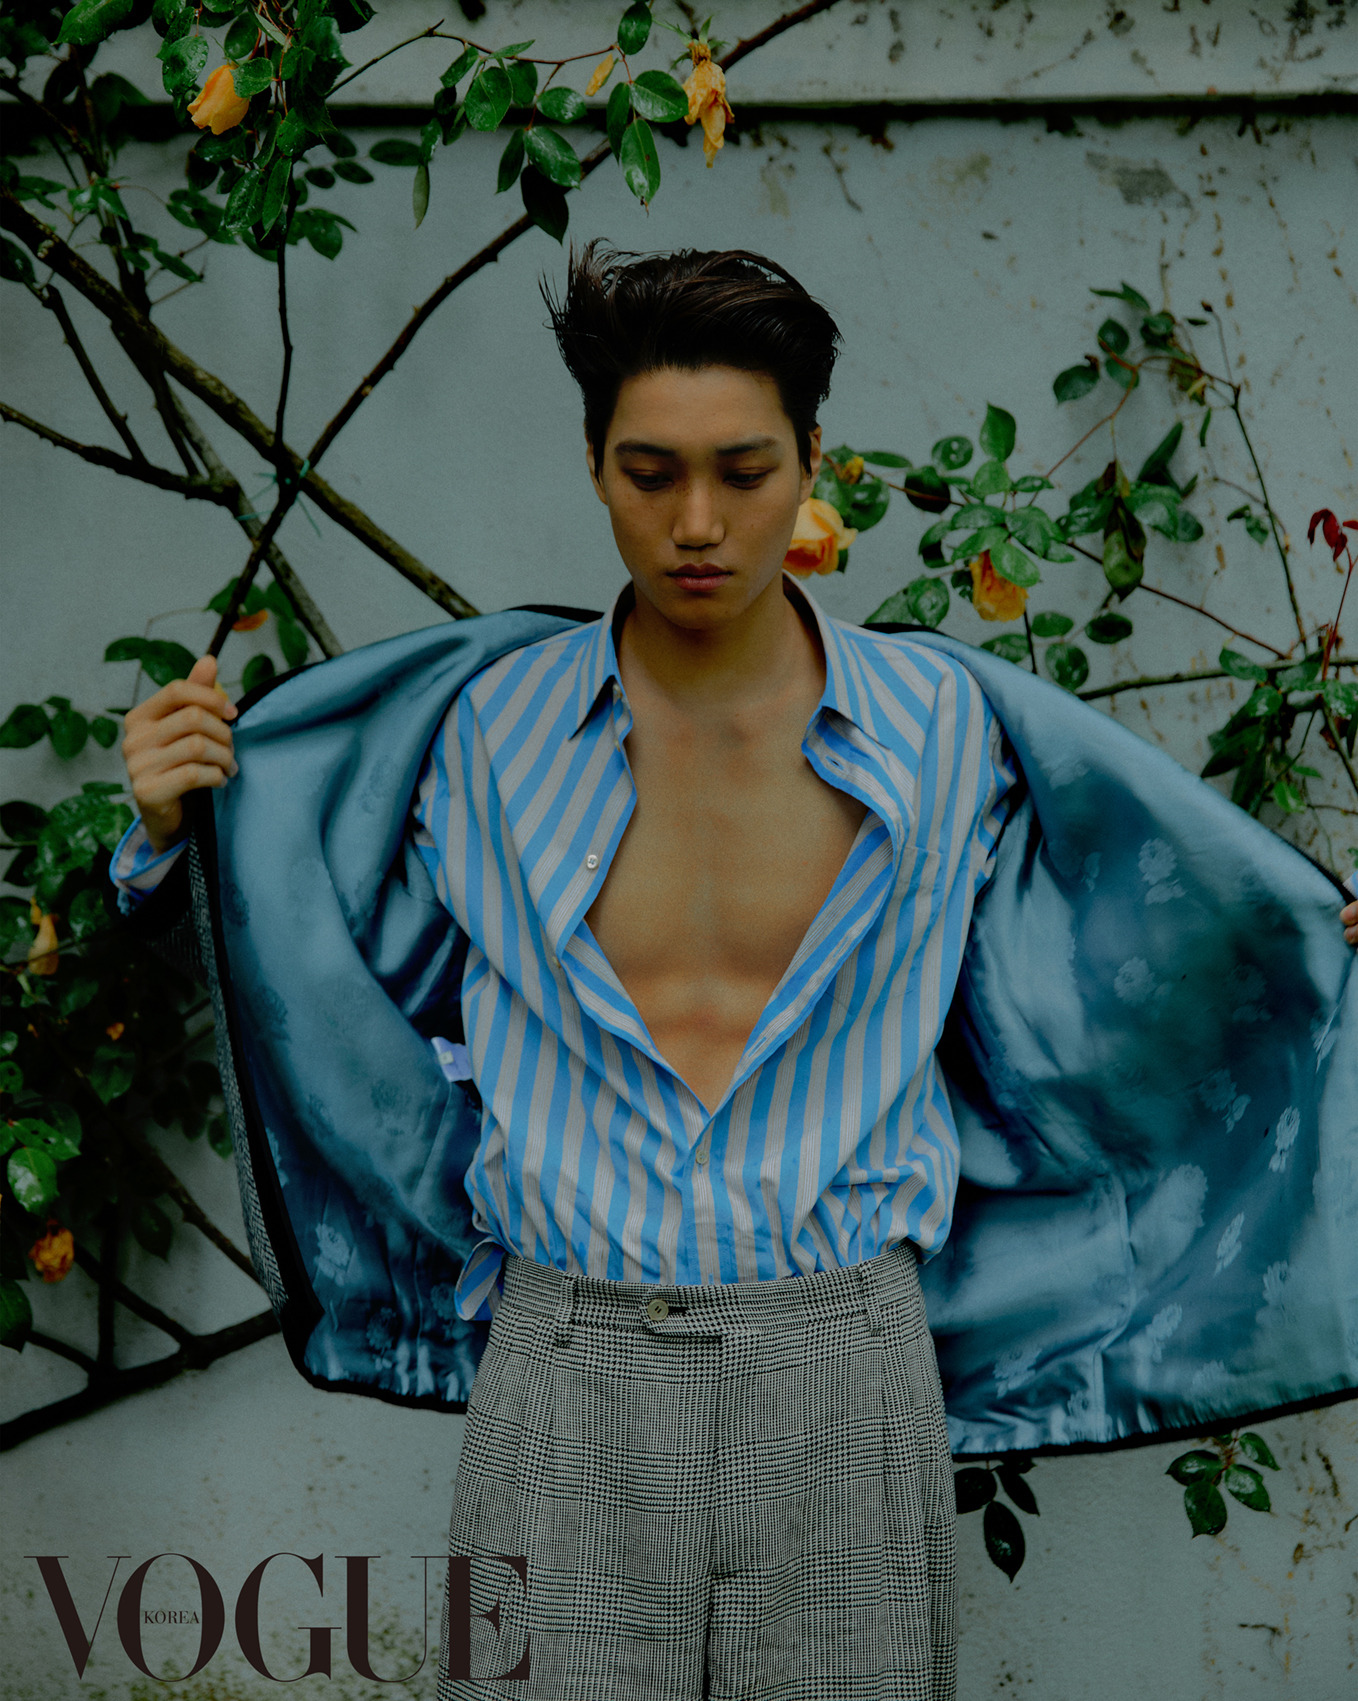 <p>Fashion magazine Vogue Korea 7 November public for information in an exclusive atmosphere with various styles to your own Personality as perfectly digested Kai of all our won.</p><p>Photoshoot in Kai houndstooth pattern adorns the coat and also the PIN pattern of the suit, a blue and red striped jacket with patch detailing of brown cotton pants, a variety of fashion and appearance. Especially the shirt between solid muscle and masculine and was also.</p><p>Meanwhile, Kai this afternoon and 9: 50 minutes first broadcast KBS 2TV with as car car as as starred in it. With online car car only asthe dream of forgotten youth in the half hundred Golden harvest as the UK, football is a simple if time in it.</p>